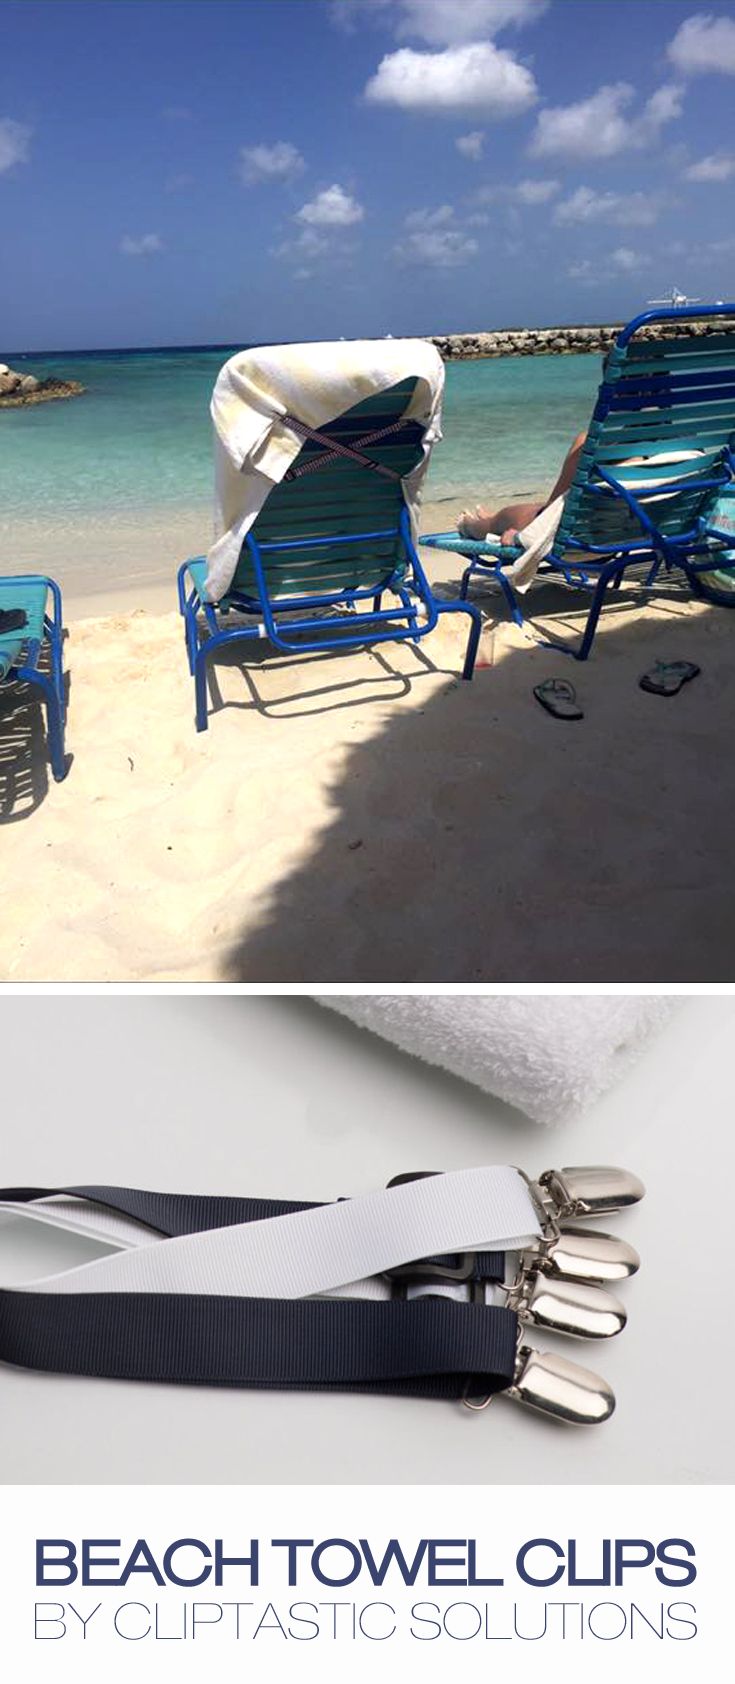 Beach Towel Clips Will Make Your Trip To The Beach So Much More